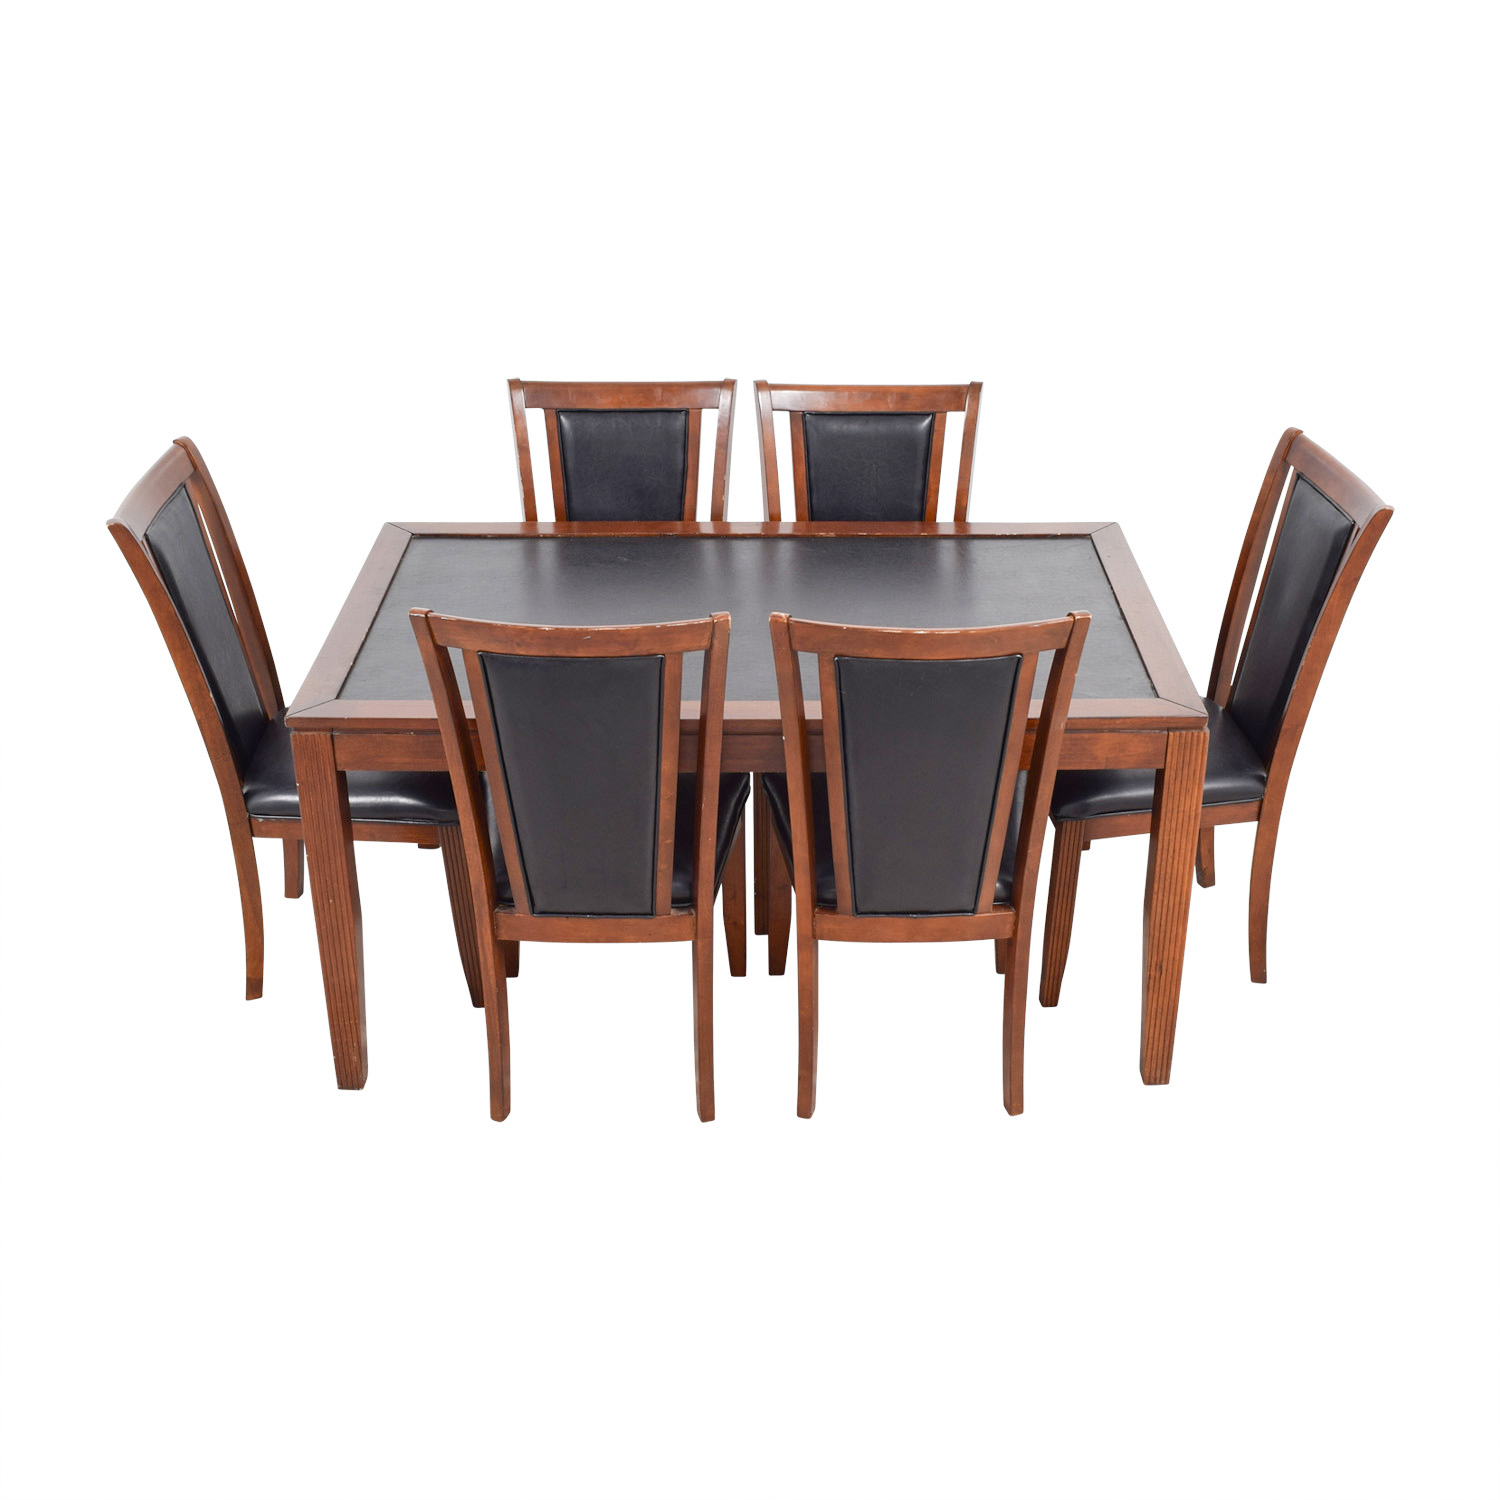 Bob's Furniture Bob's Furniture Leather and Wood Dining Set used